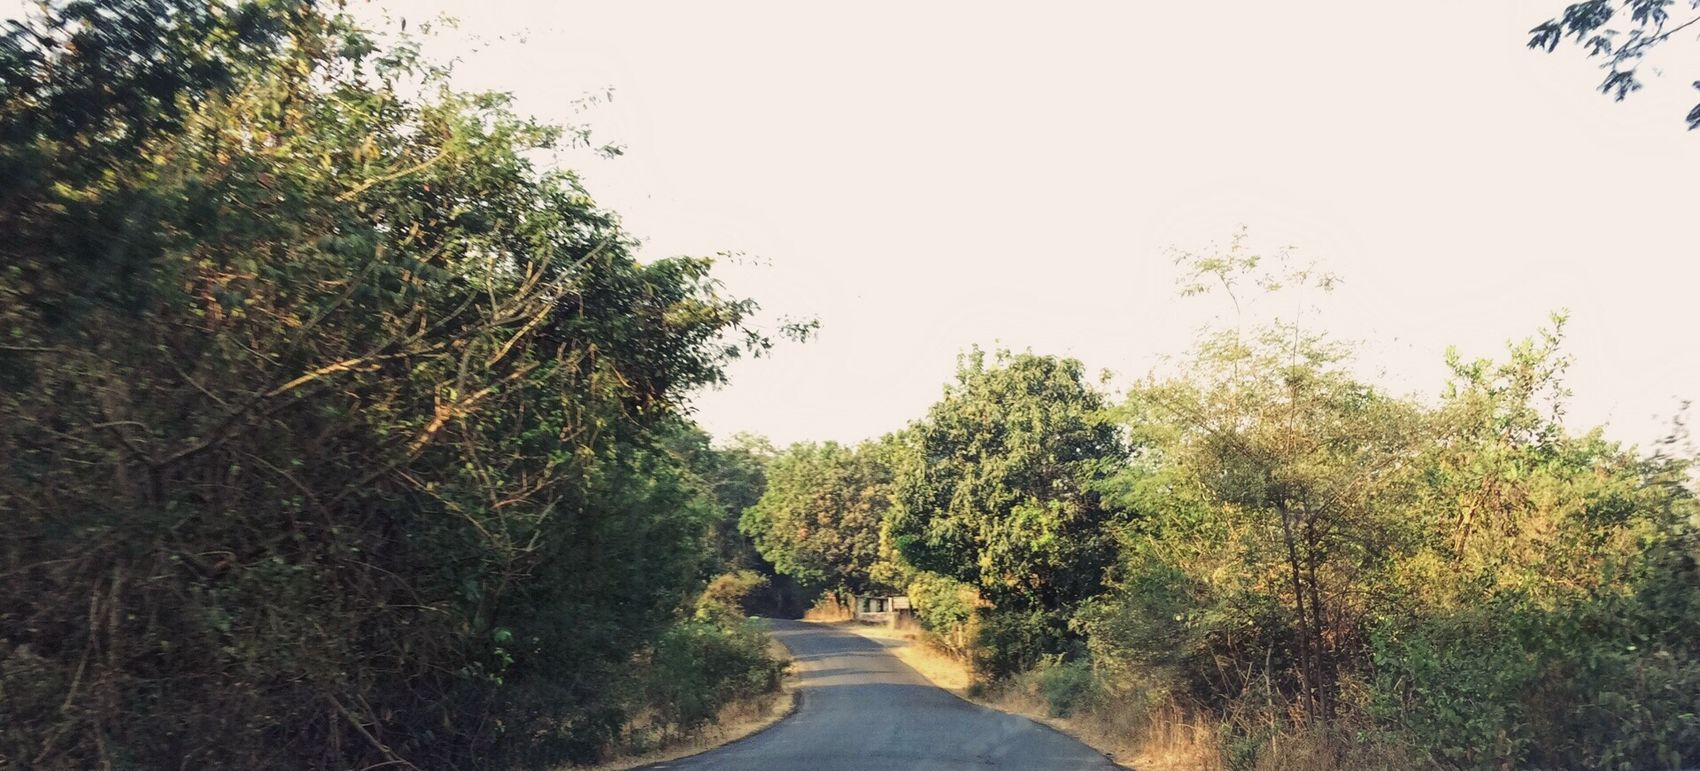 Tree The Way Forward Road Nature Lush Foliage Growth Scenics Tranquility Outdoors Day Beauty In Nature Clear Sky No People Sky EyeEm Best Shots - Nature EyeEm Best Shots EyeEm Best Edits